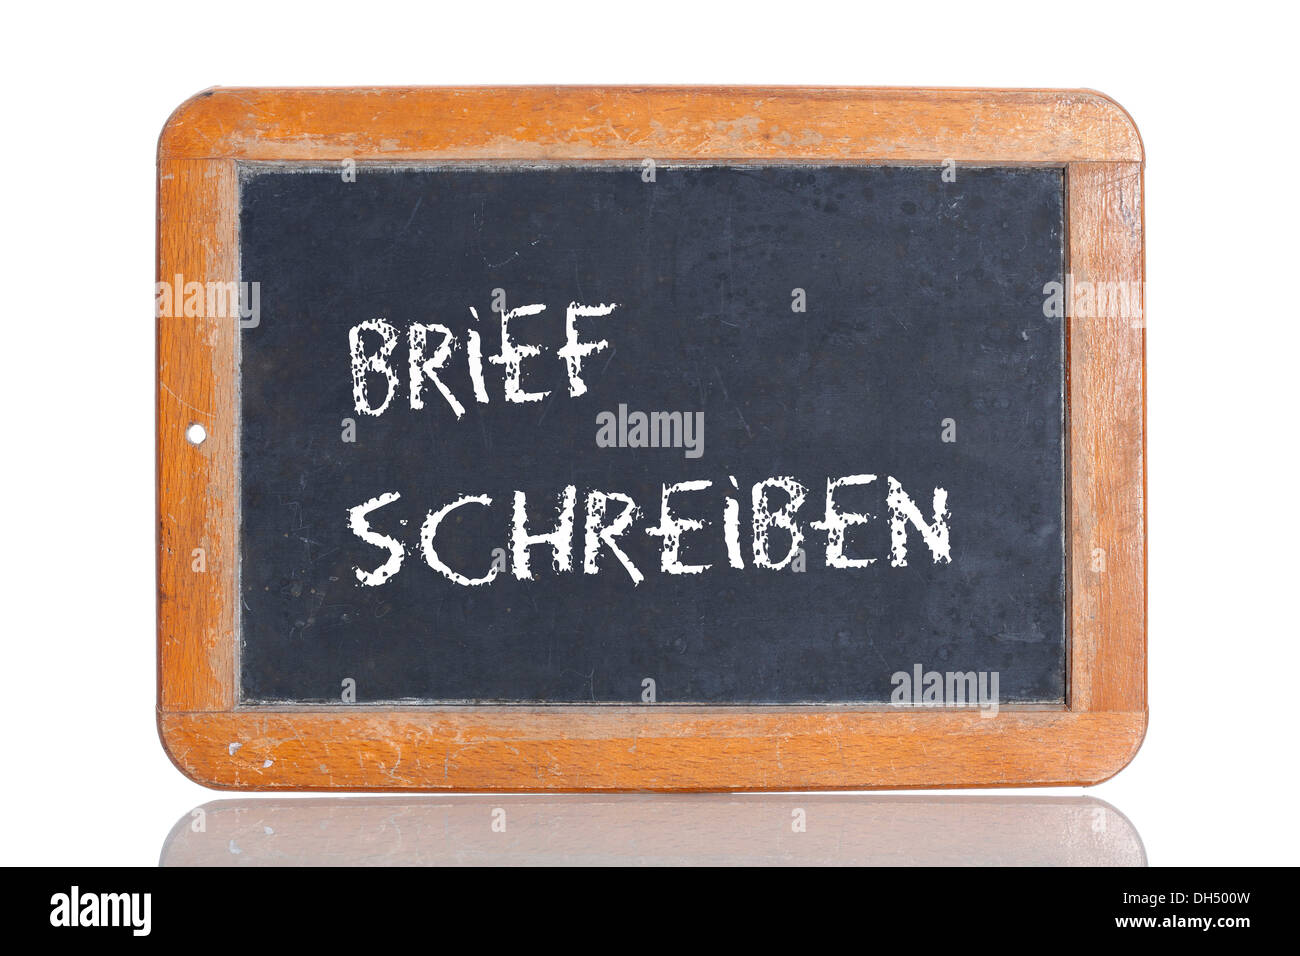 Old chalkboard, lettering 'BRIEF SCHREIBEN', German for 'WRITE A LETTER' - Stock Image